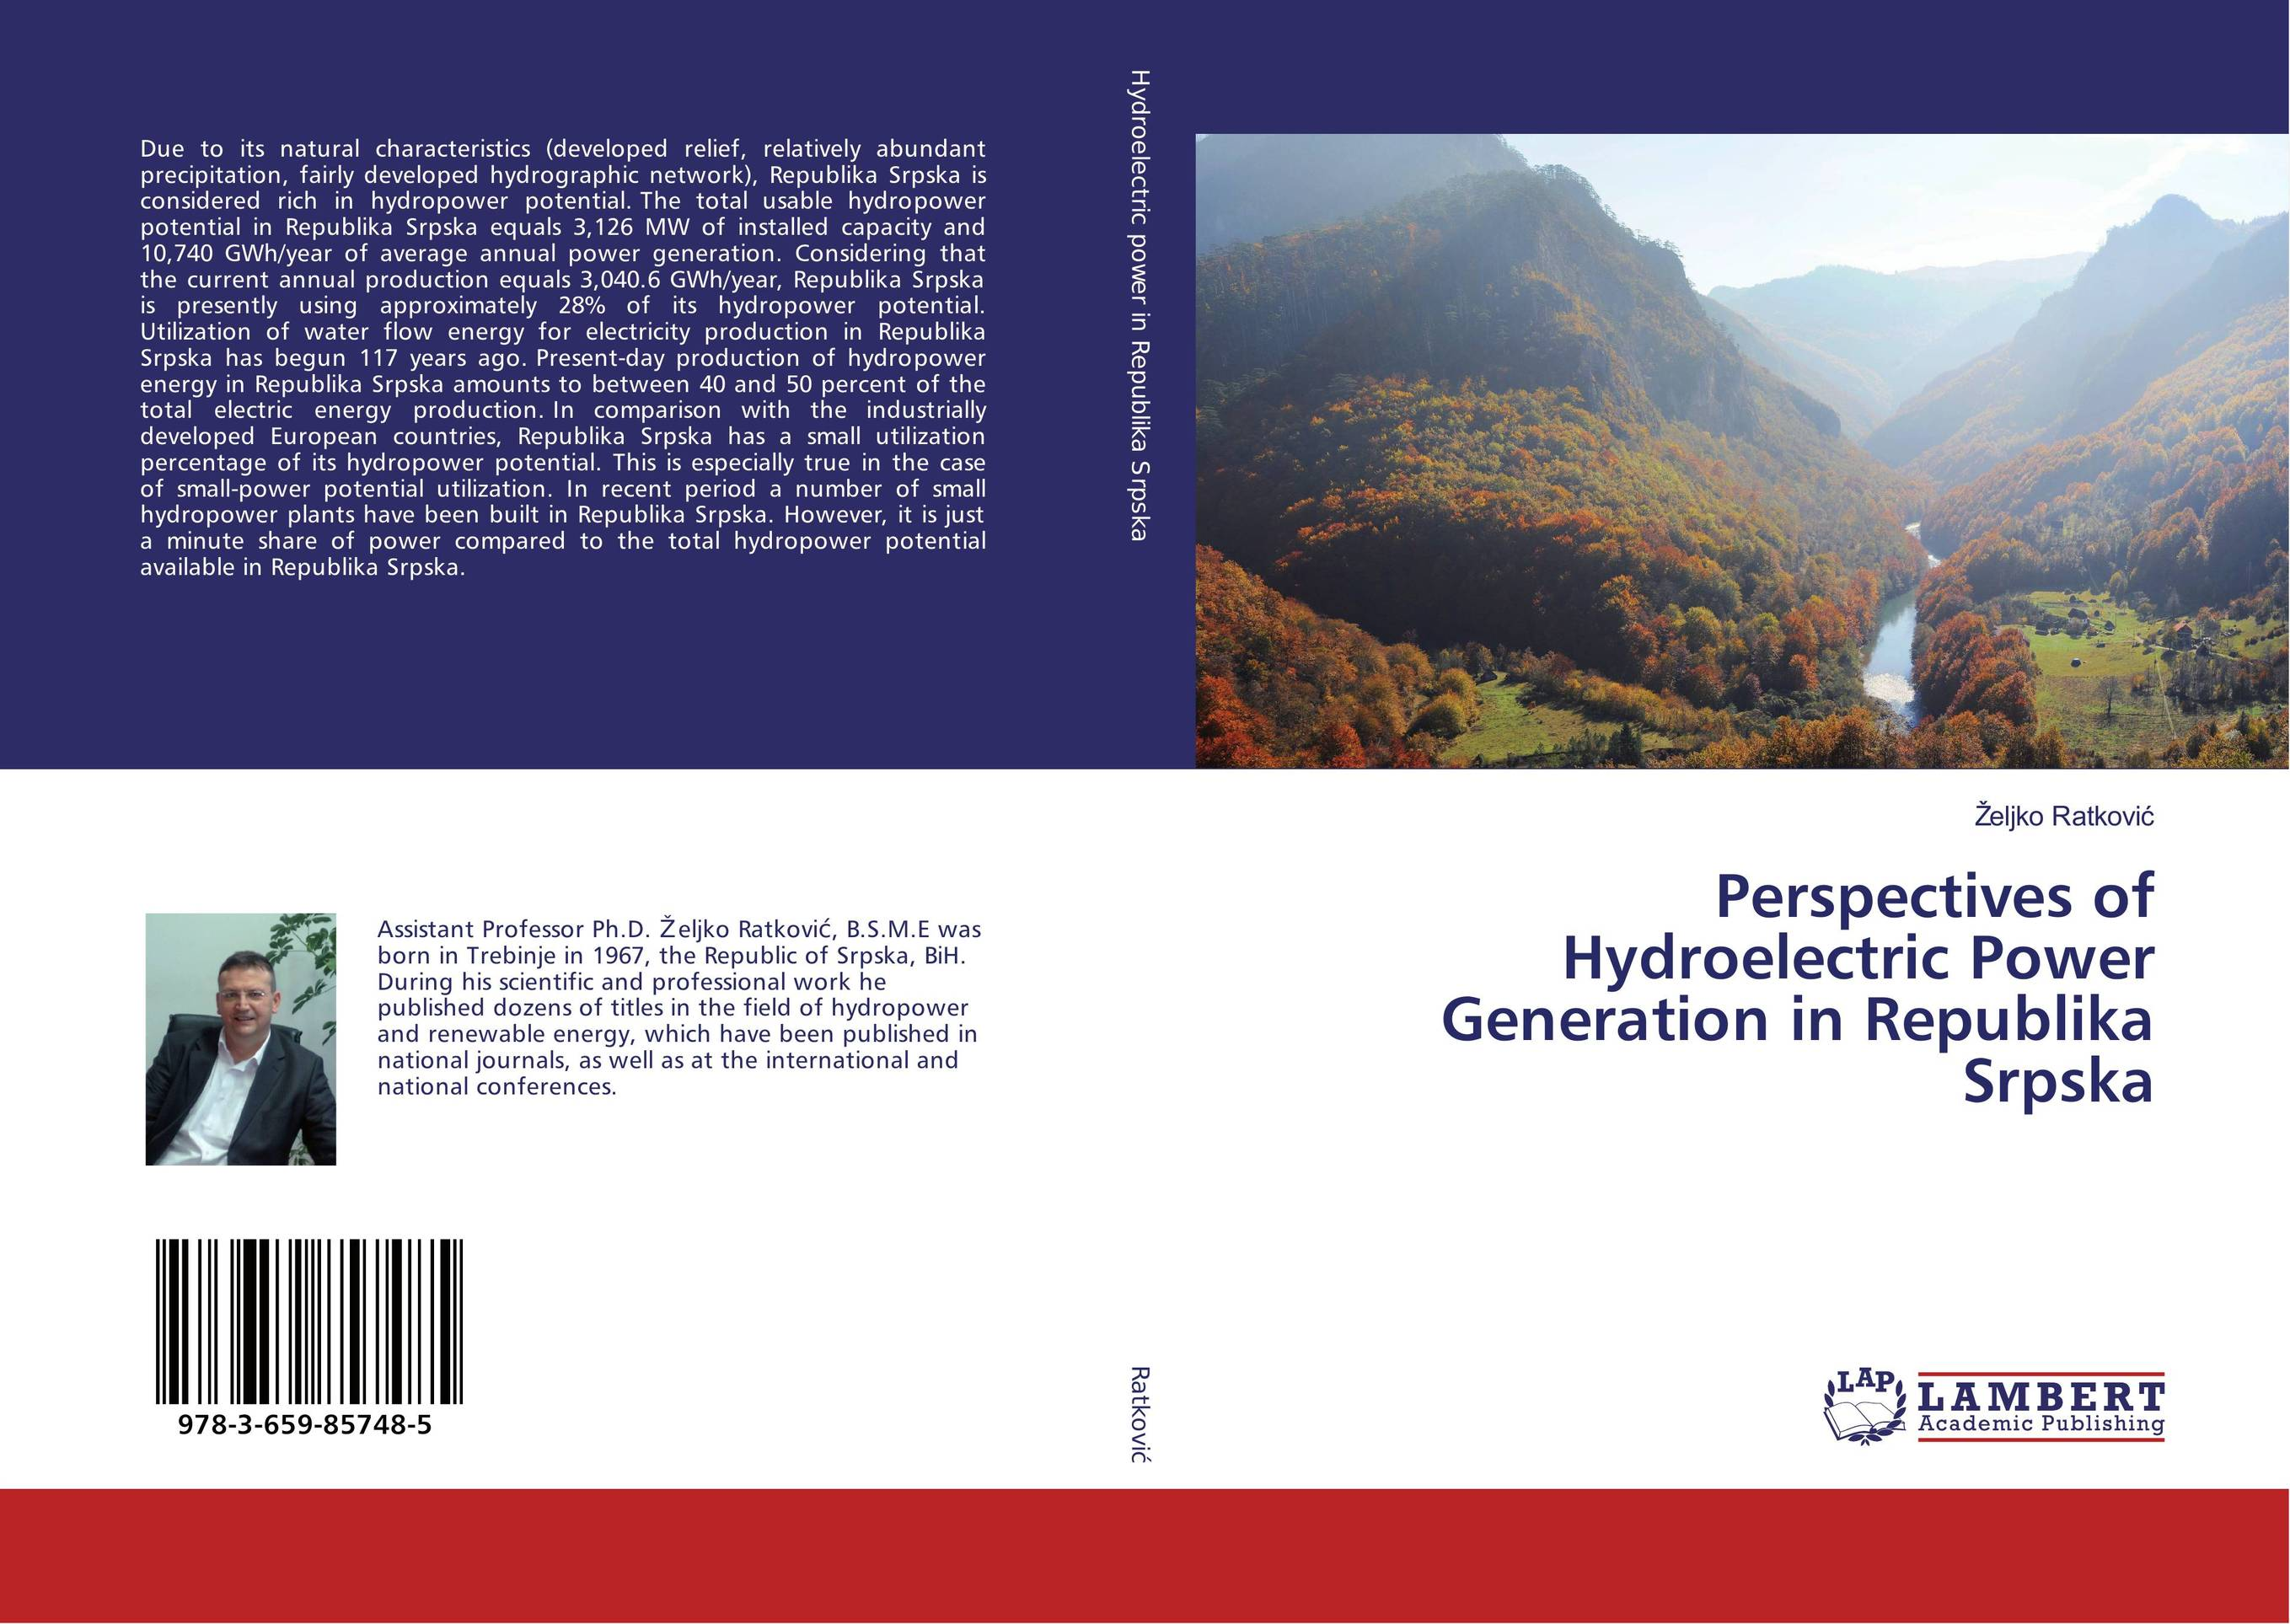 Perspectives of Hydroelectric Power Generation in Republika Srpska development of a computational interface for small hydropower plant